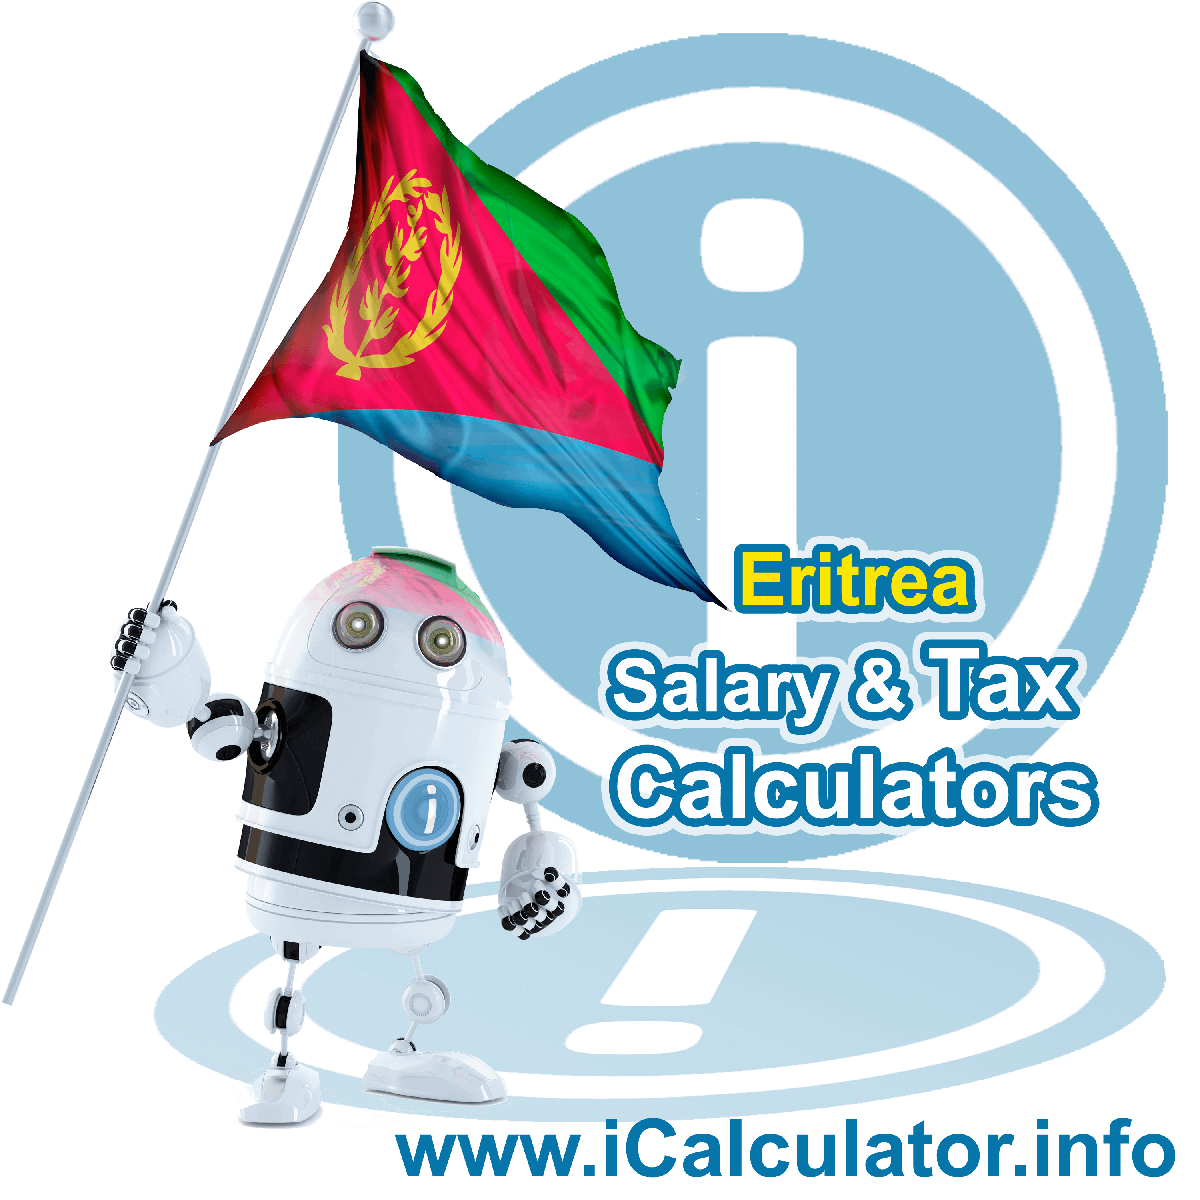 Eritrea Salary Calculator. This image shows the Eritreaese flag and information relating to the tax formula for the Eritrea Tax Calculator